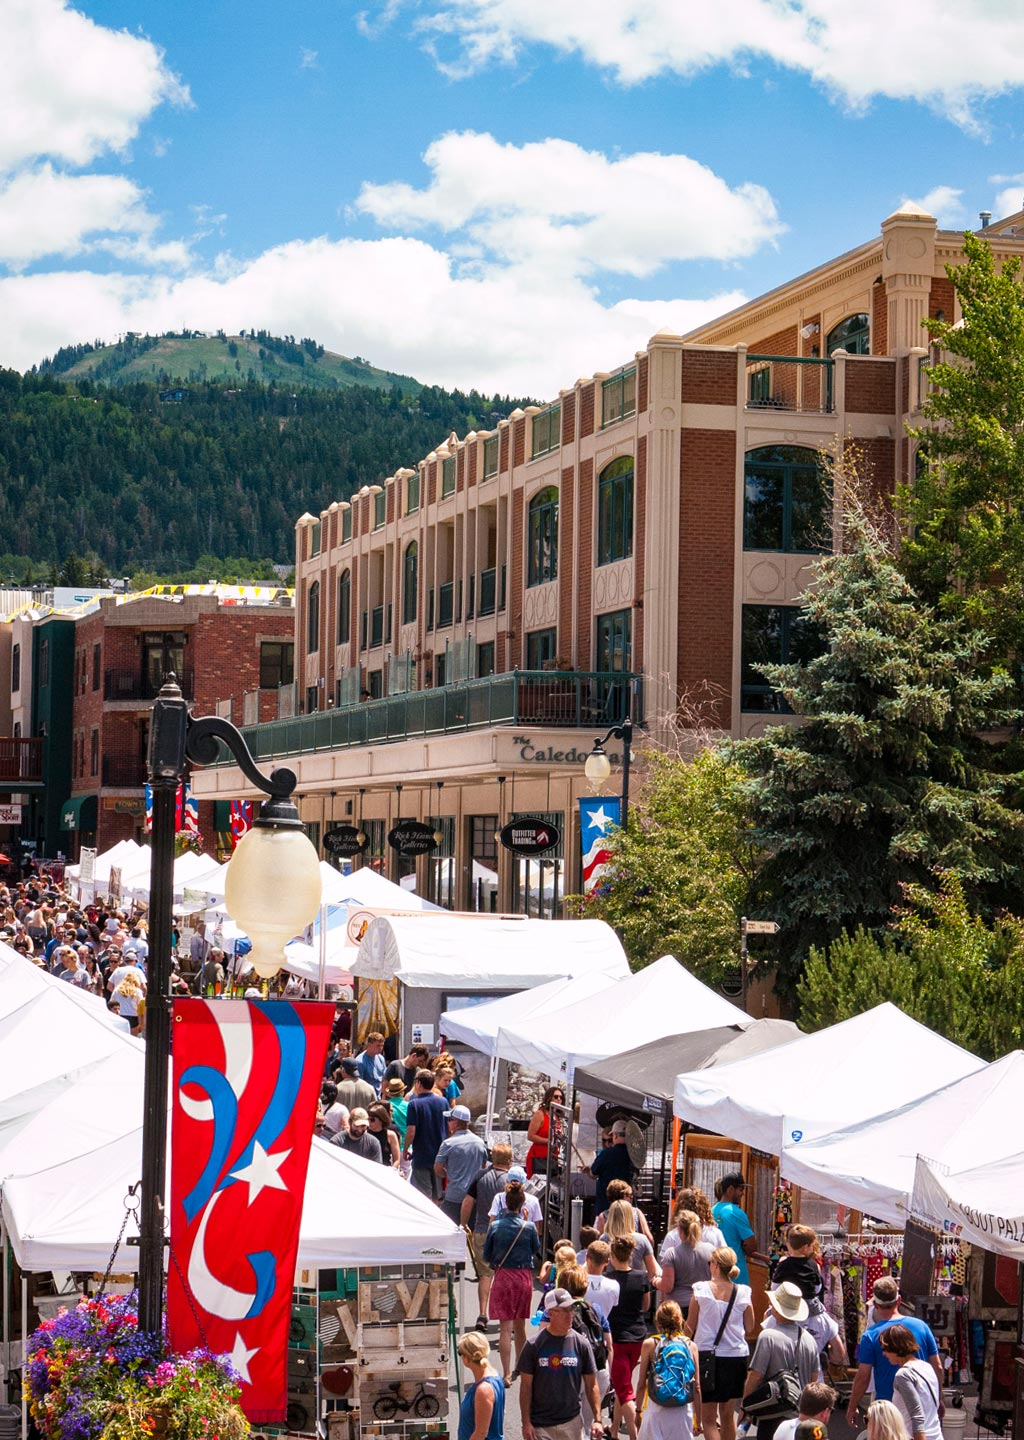 Park Silly Sunday festival on Main Street Park City during summer time. The Caledonian Hotel in the mid-ground, Deer Valley rises in the background